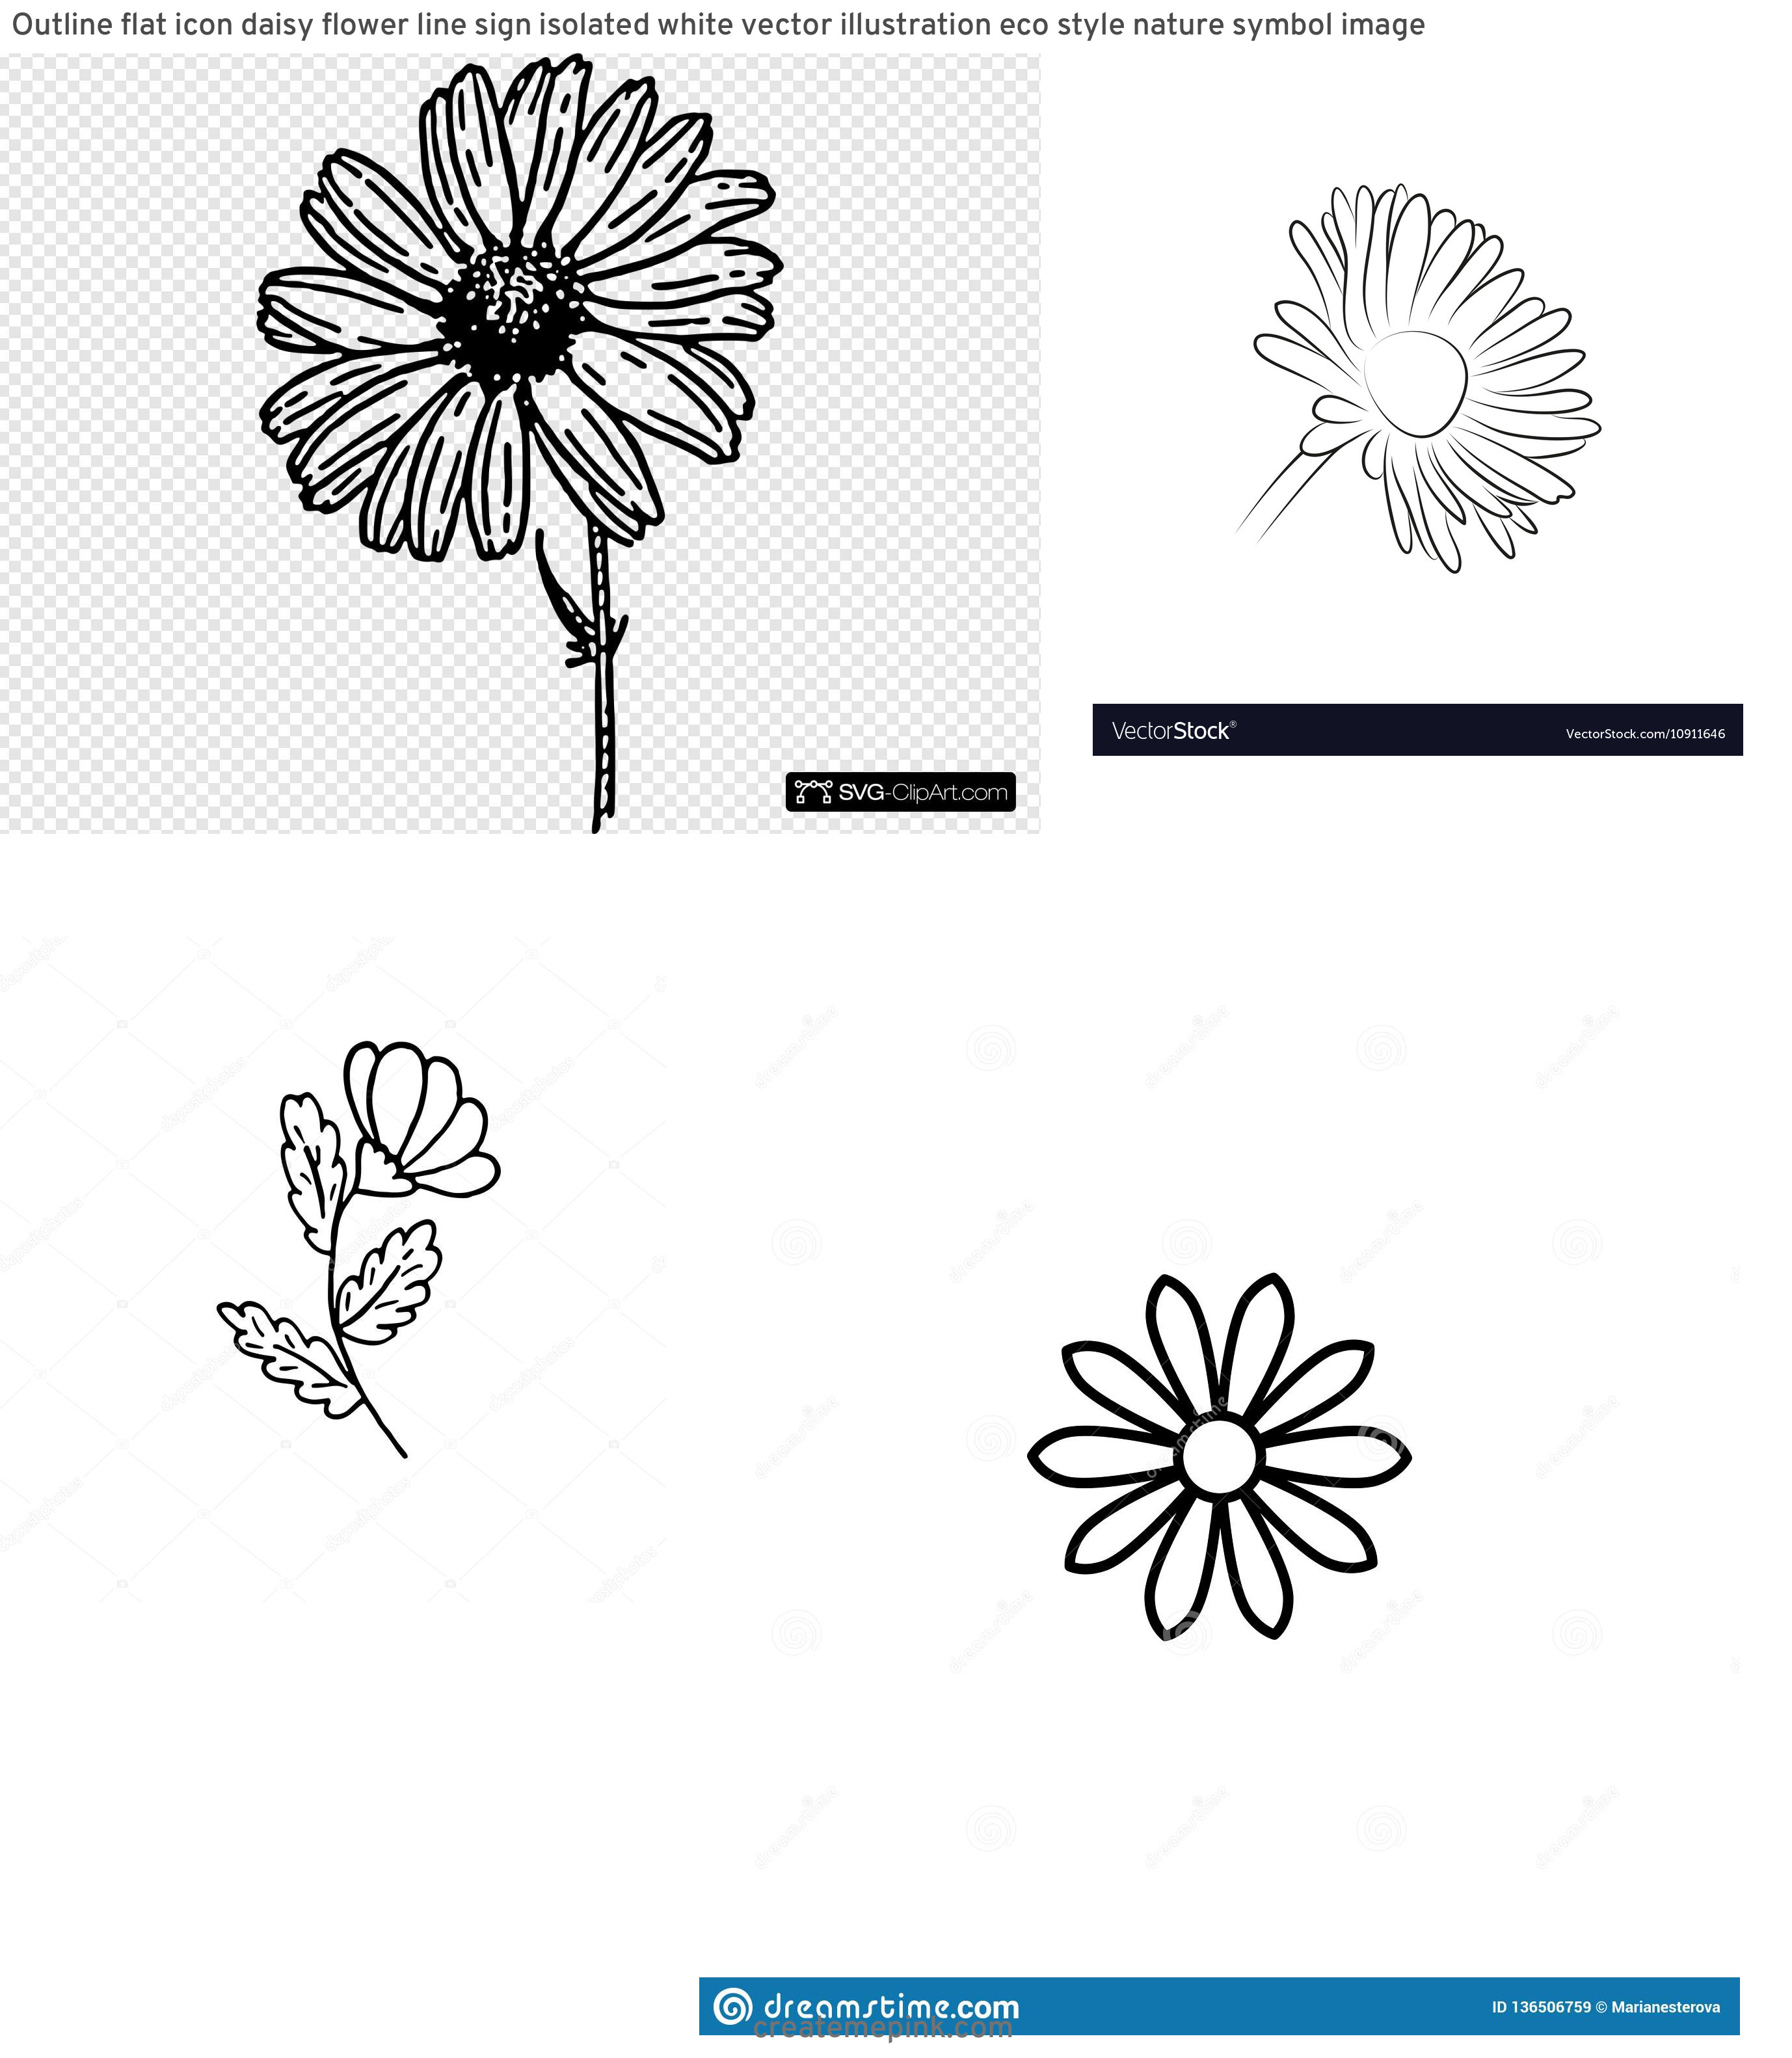 Flower Daisey Black Vector Art: Outline Flat Icon Daisy Flower Line Sign Isolated White Vector Illustration Eco Style Nature Symbol Image